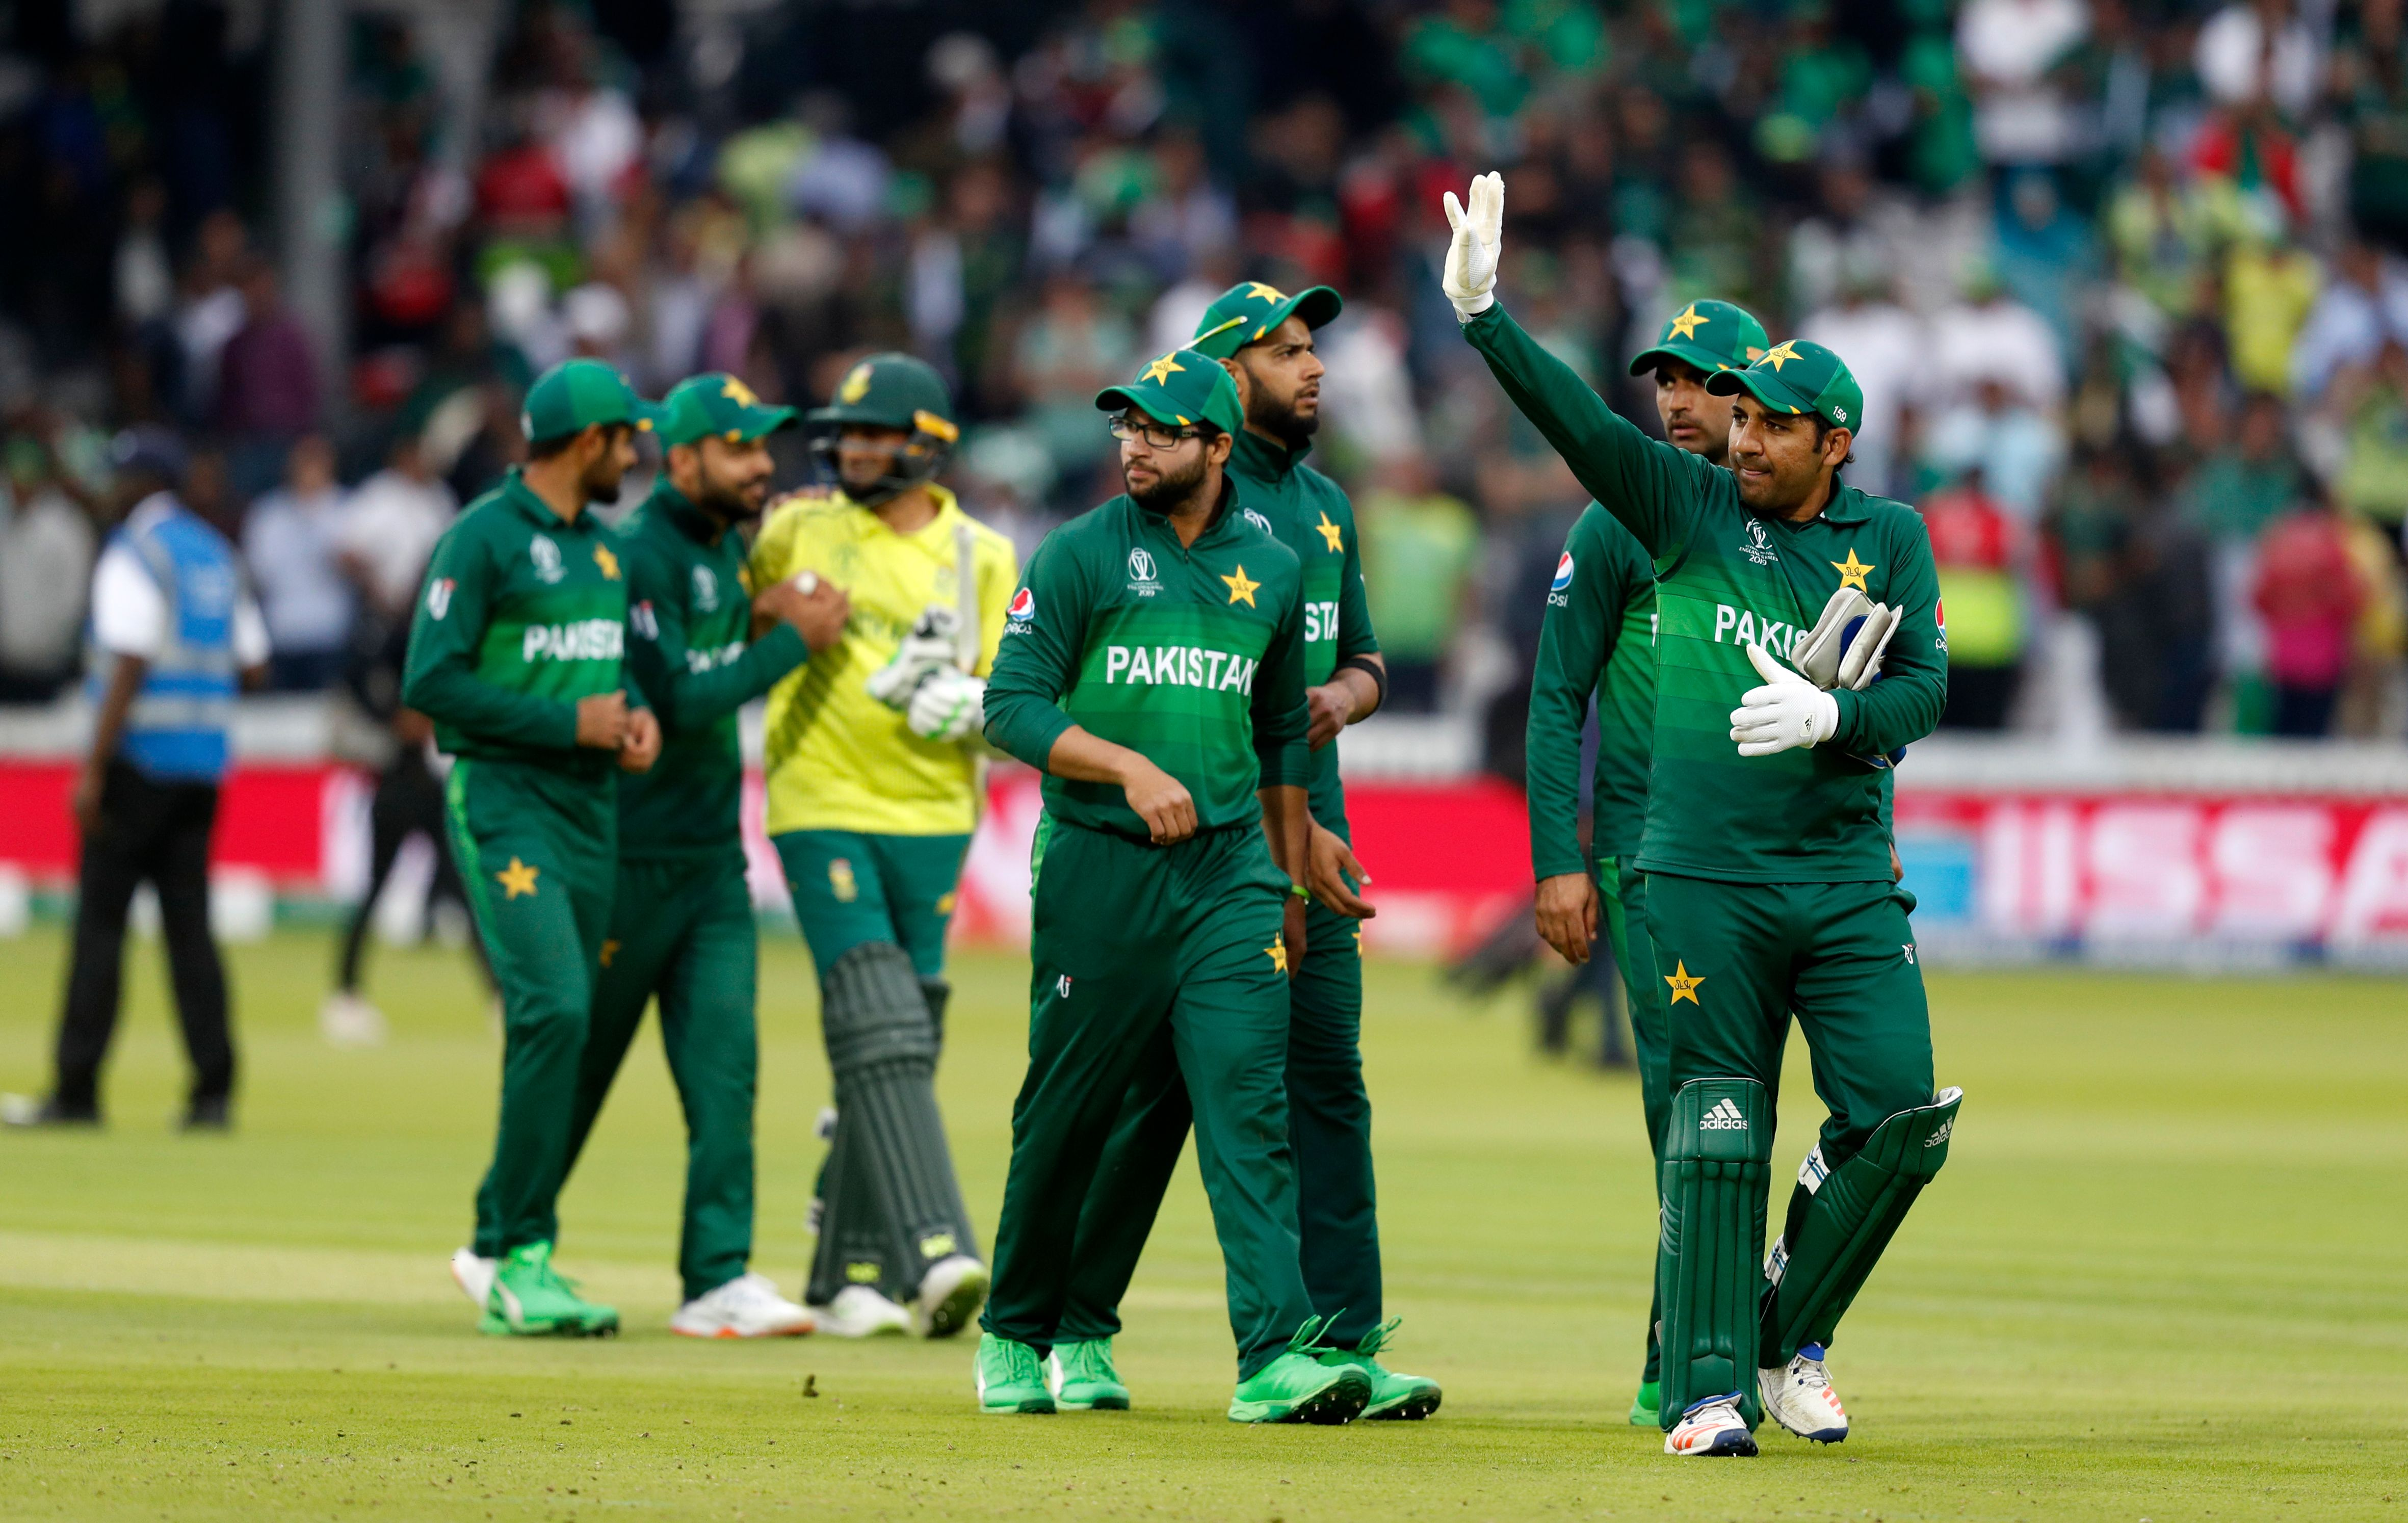 Pick the world cup 2020 schedule today match live streaming